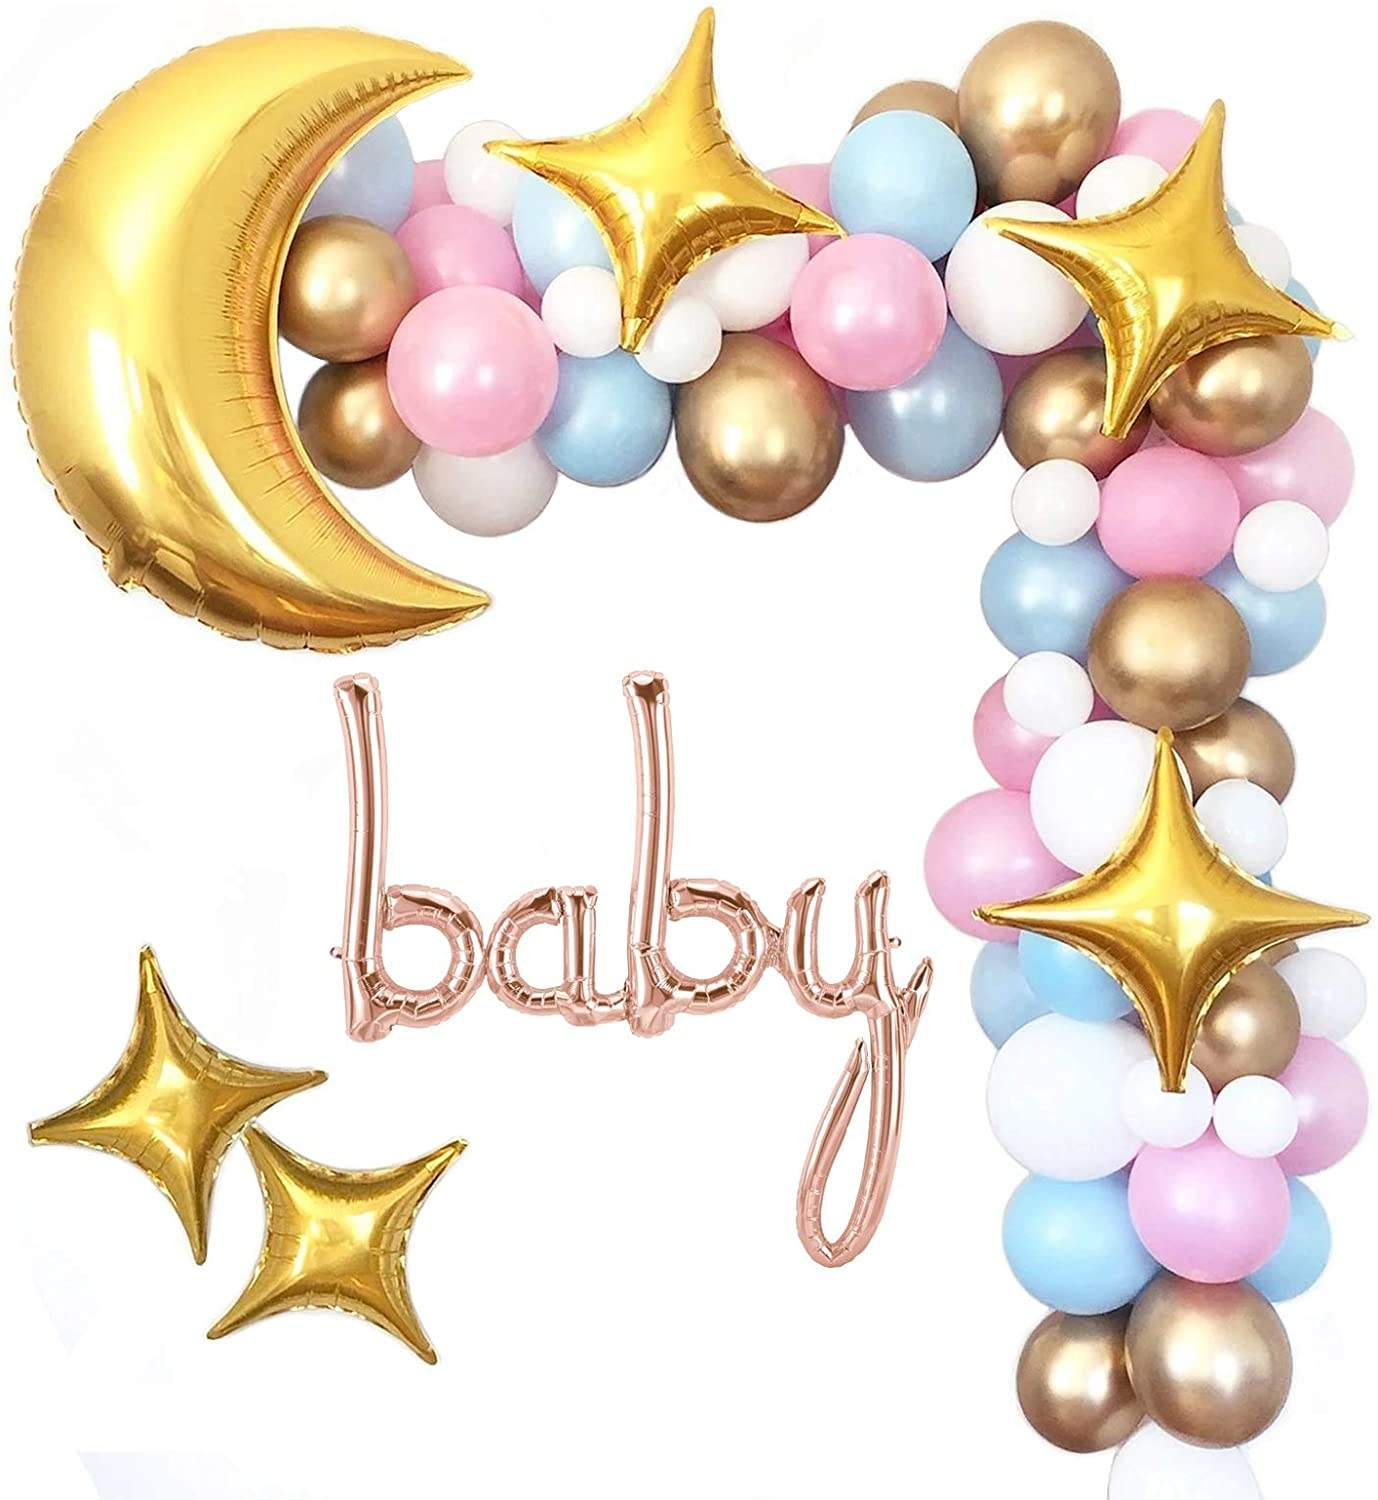 Twinkle Twinkle Little Star Baby Shower Decorations Boy or Girl Moon And Star Balloon Garland Arch Kit for Gender Reveal Party